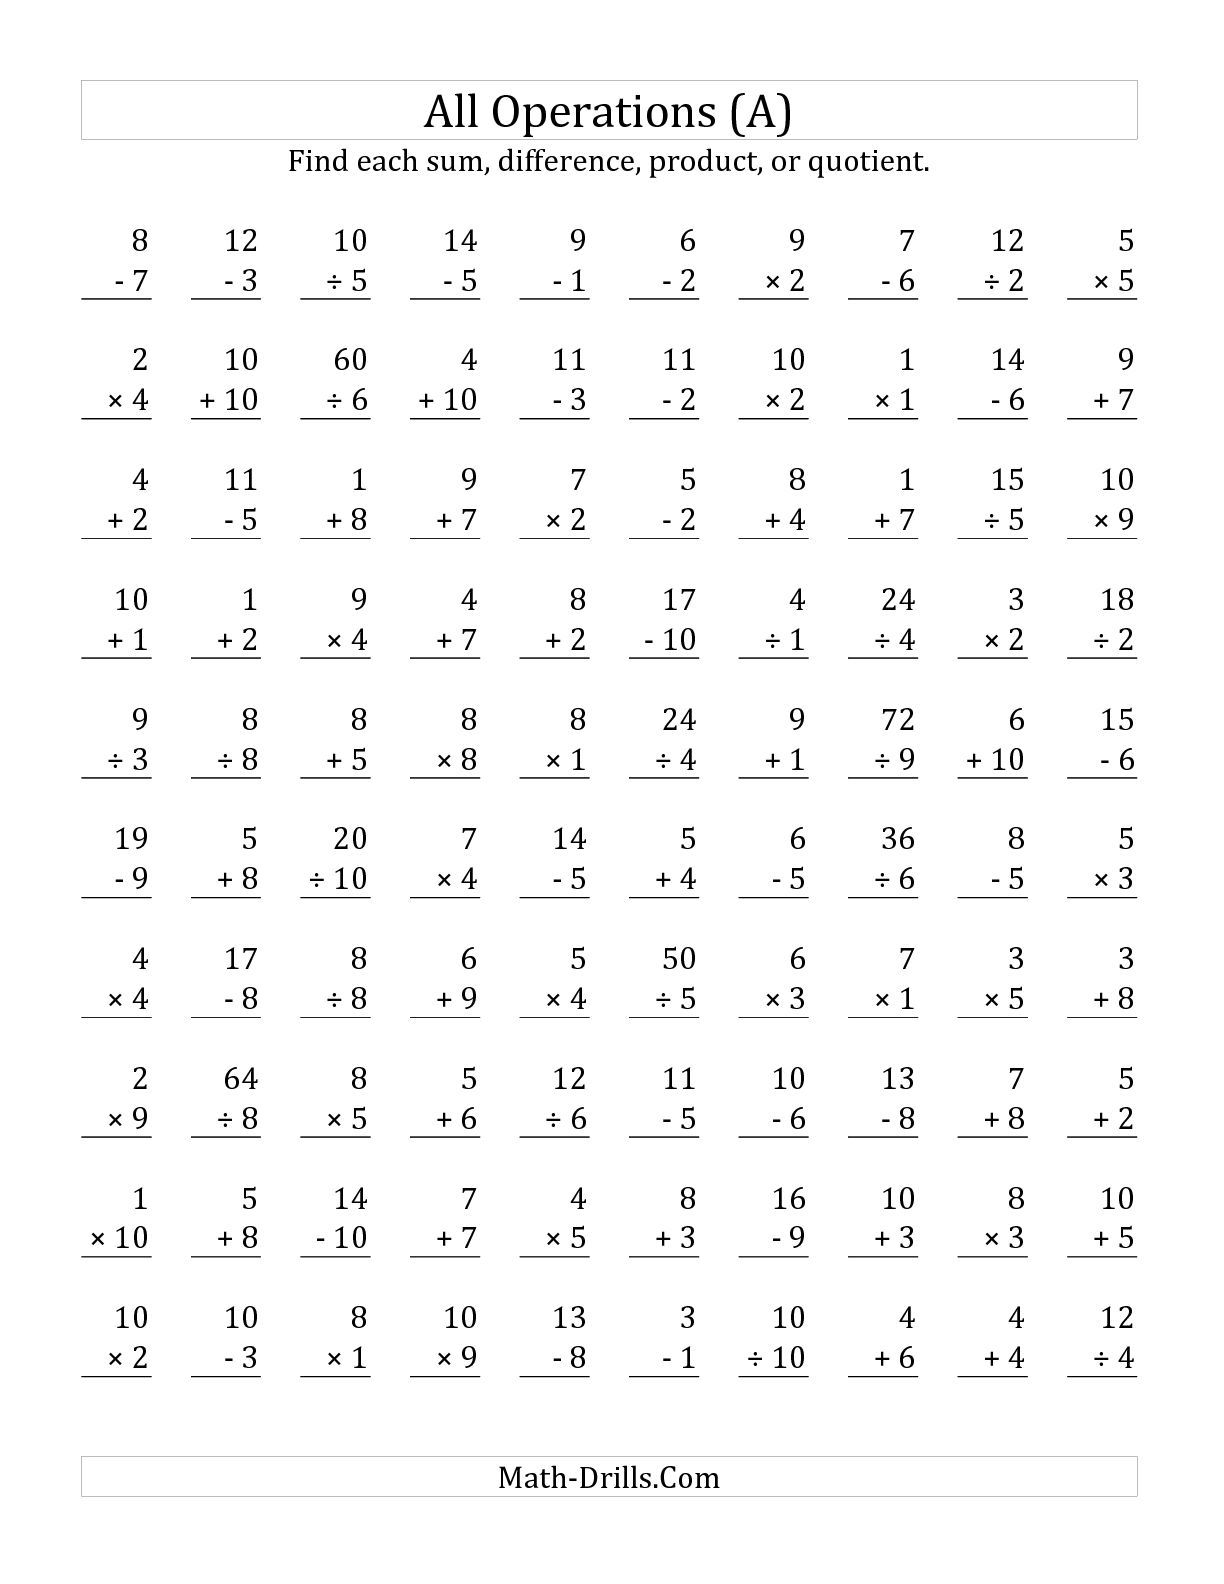 Worksheets Math Facts Worksheet Generator the all operations with facts from 1 to 10 a math worksheet the